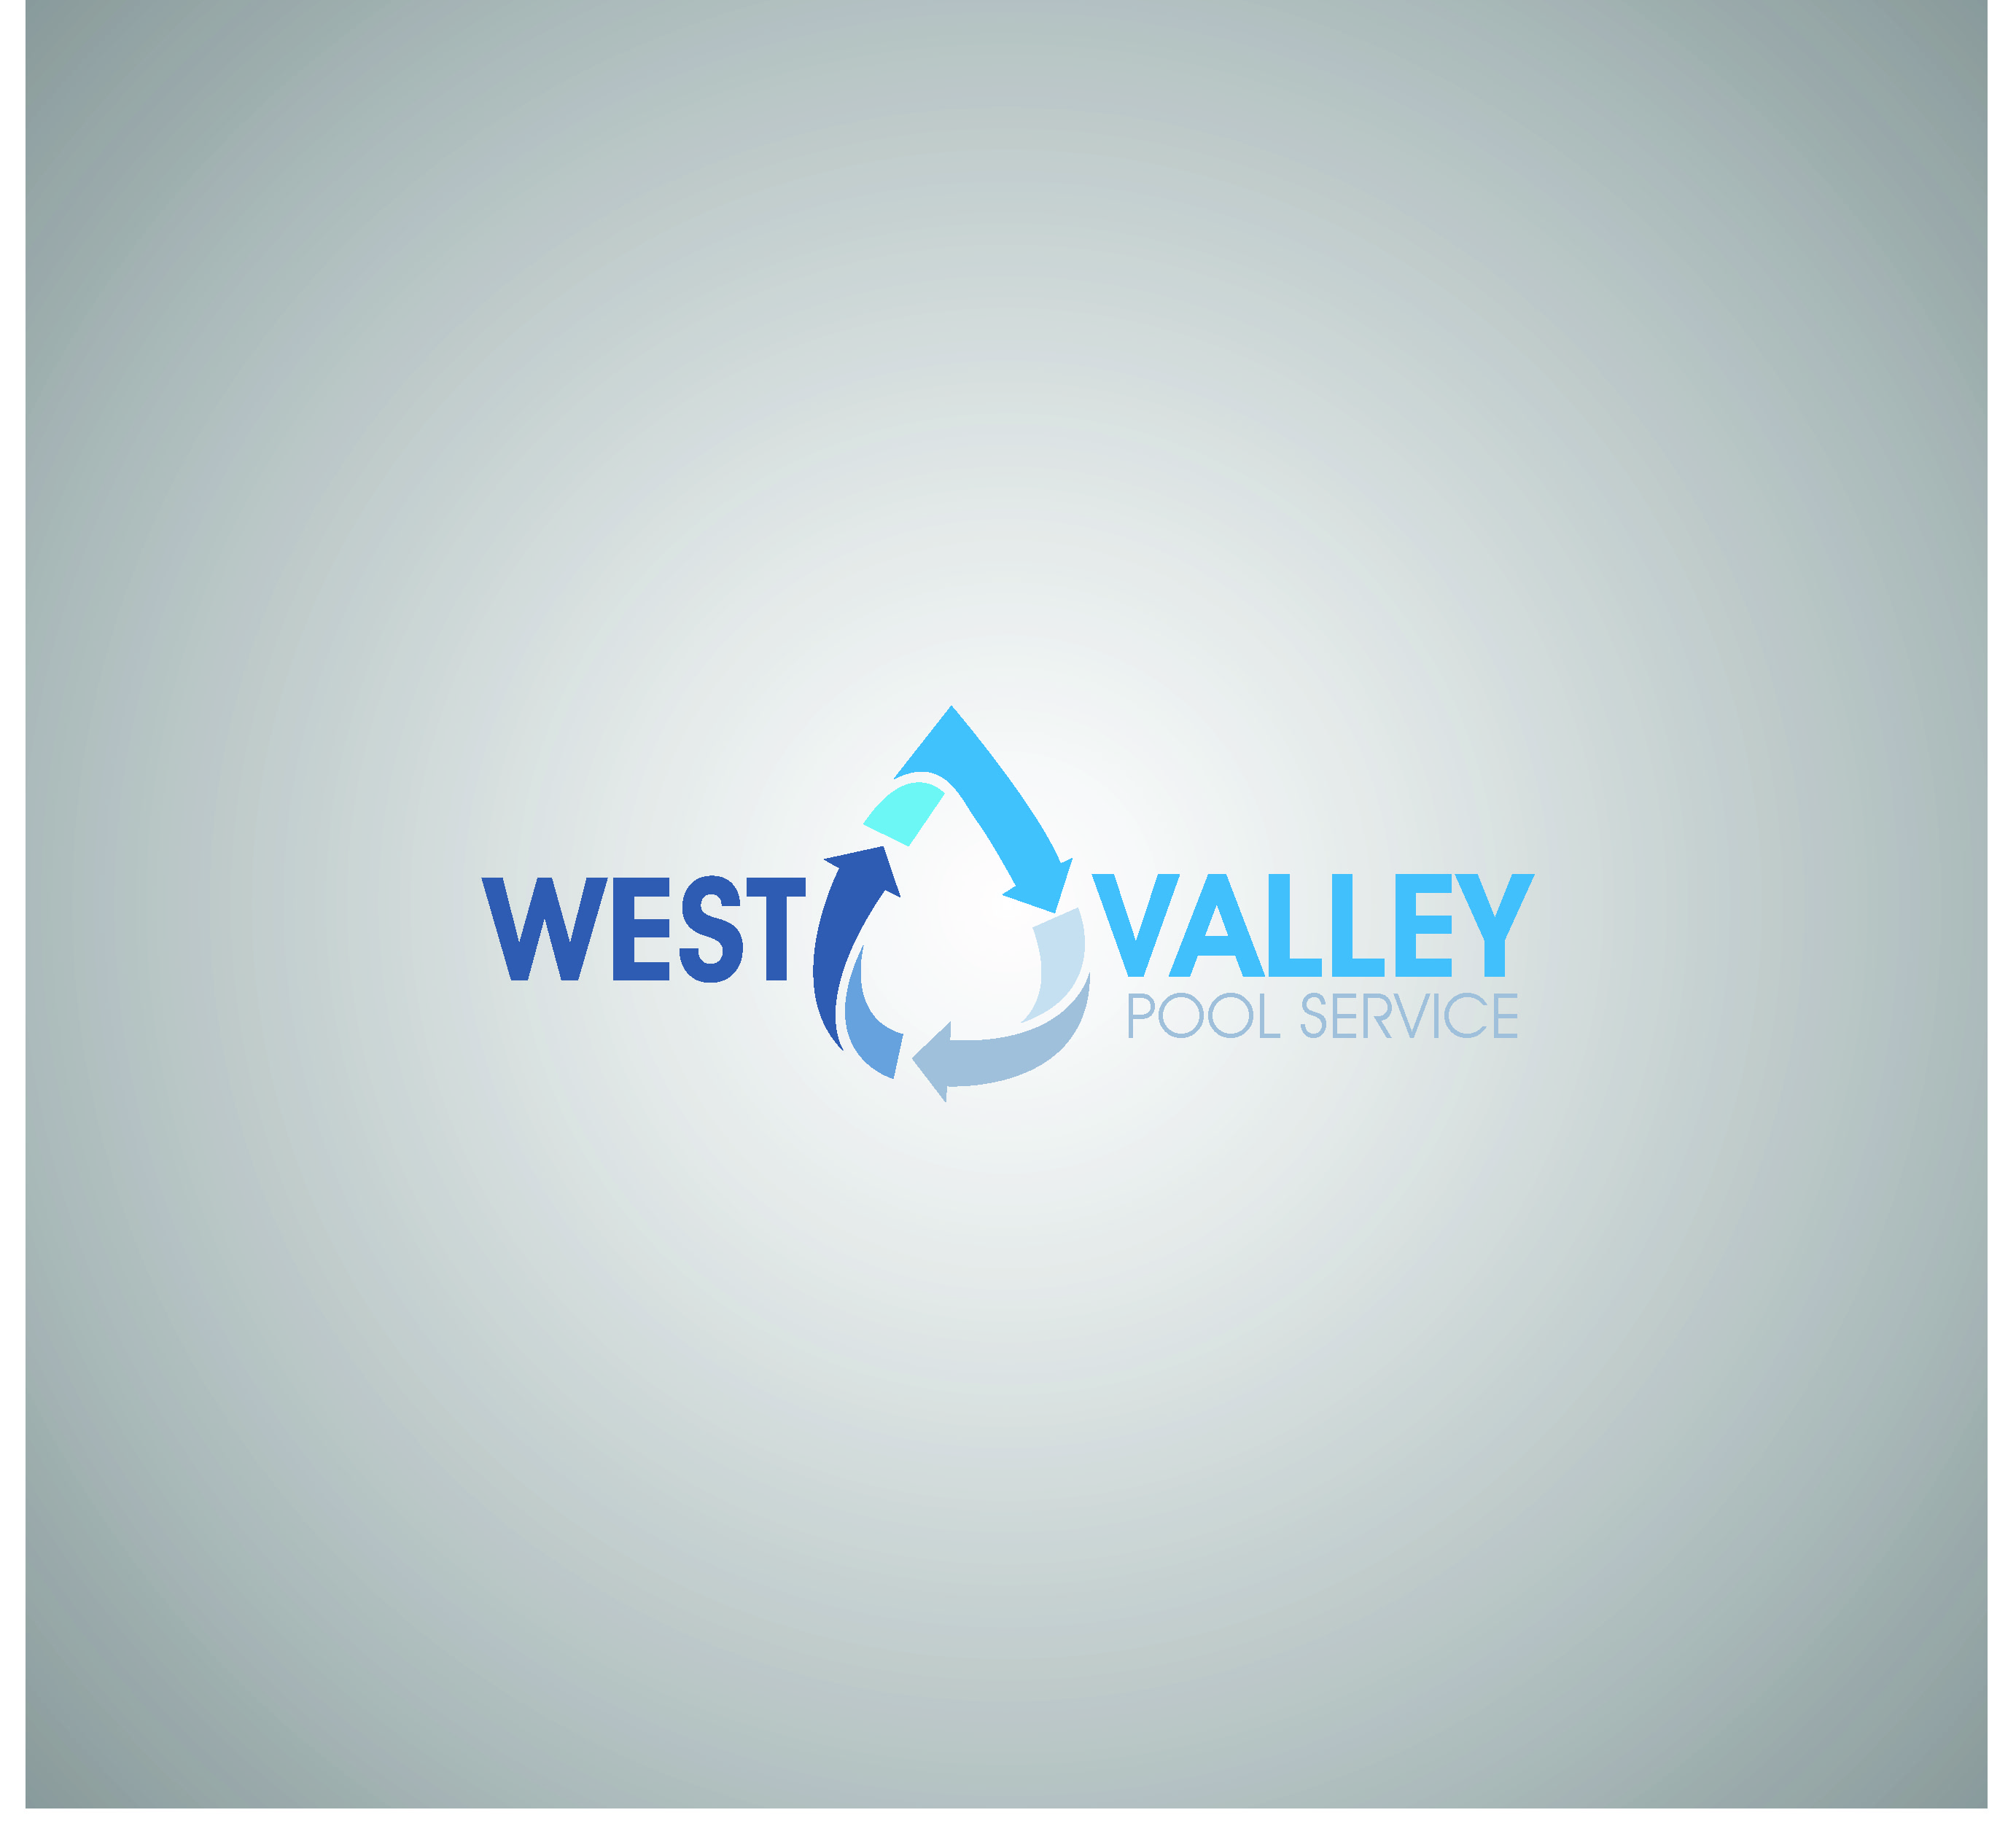 Logo Design by Sampath Gunathilaka - Entry No. 13 in the Logo Design Contest Clever Logo Design for West Valley Pool Service.